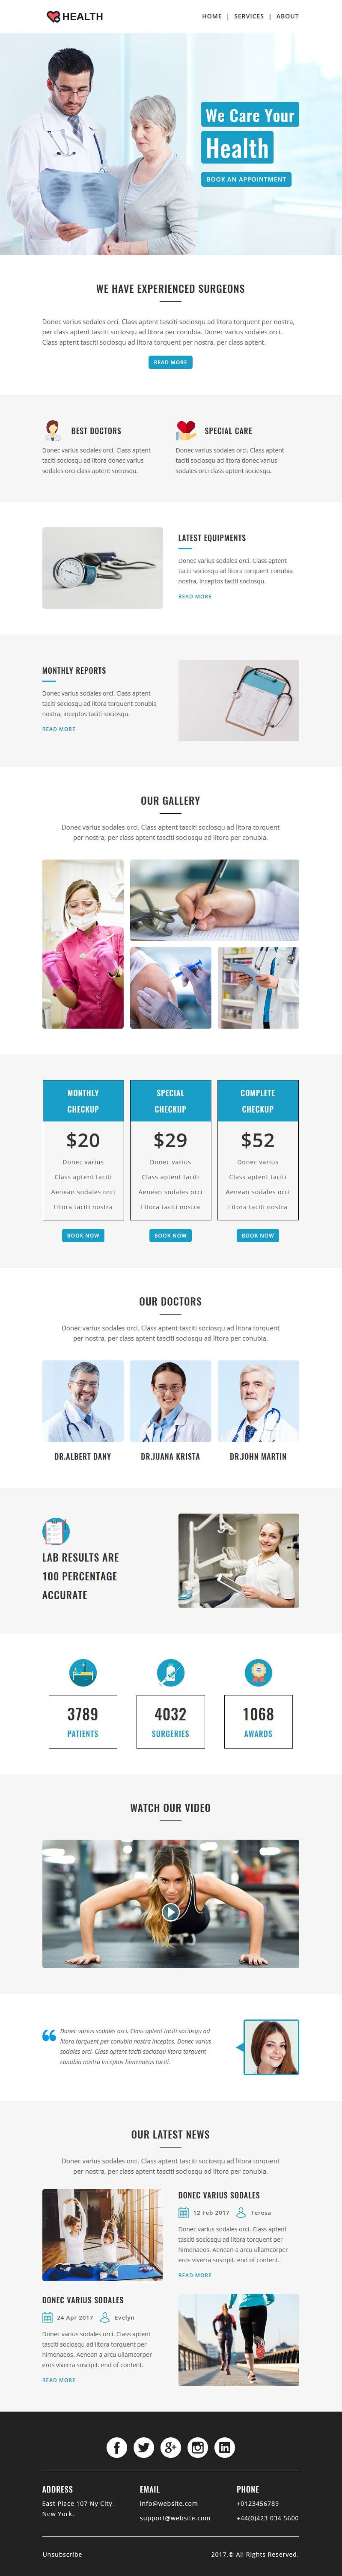 HEALTH- Responsive Email Template